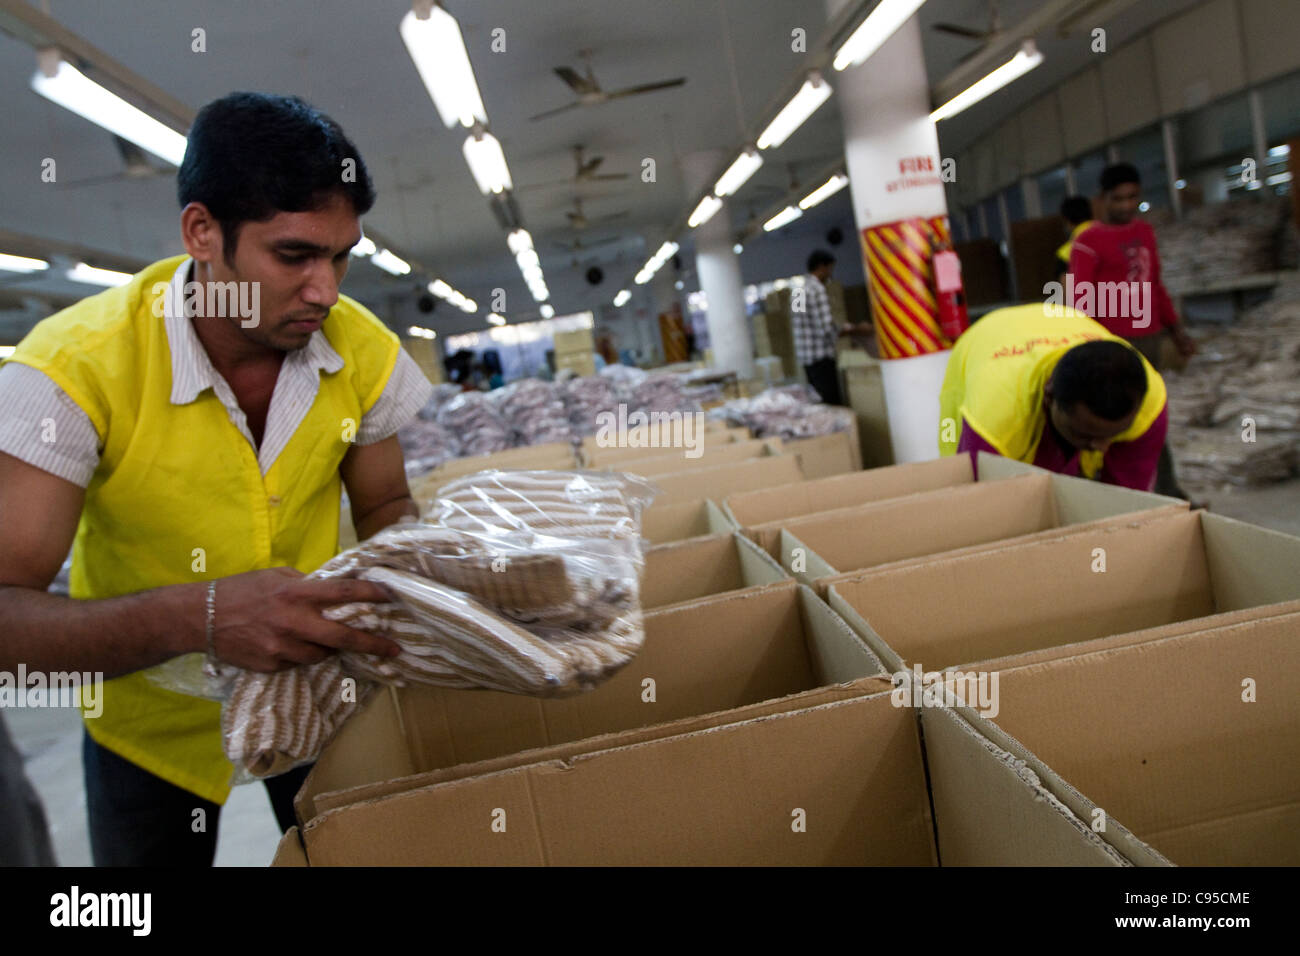 Garments worker in Bangladesh - Stock Image